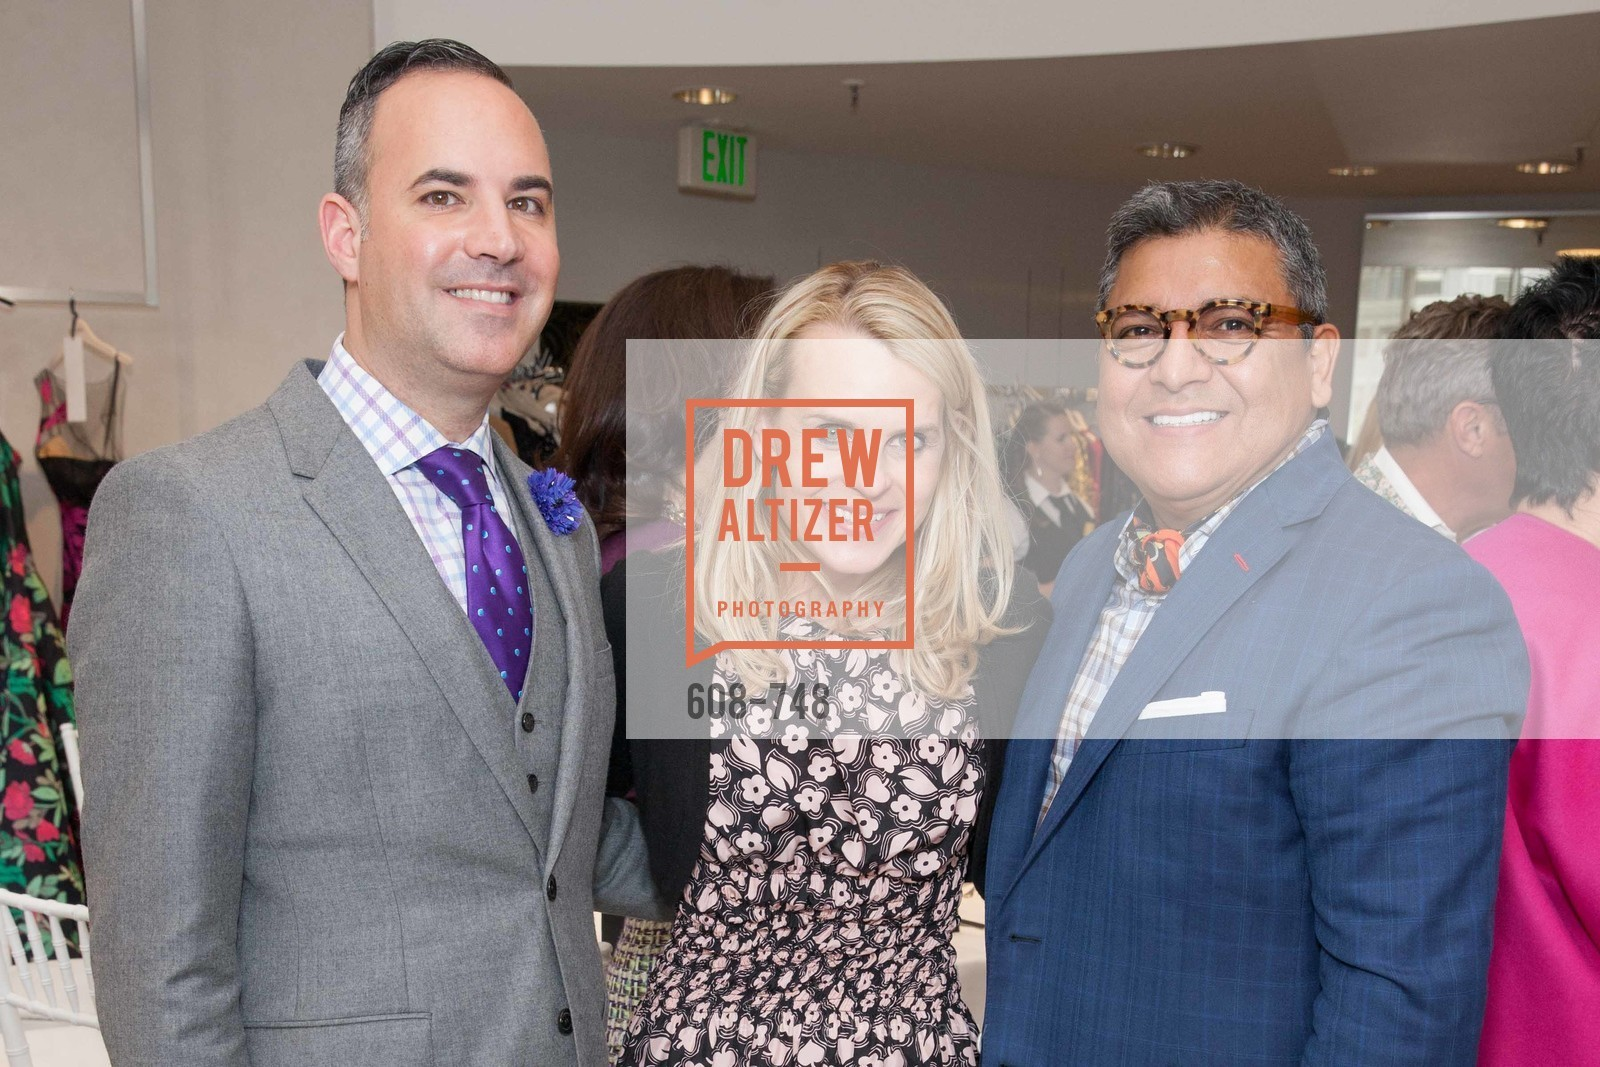 Robert Arnold-Kraft, Jane Mudge, Riccardo Benavides, PETER COPPING'S Personal Appearance at SAKS FIFTH AVENUE, US, May 22nd, 2015,Drew Altizer, Drew Altizer Photography, full-service agency, private events, San Francisco photographer, photographer california